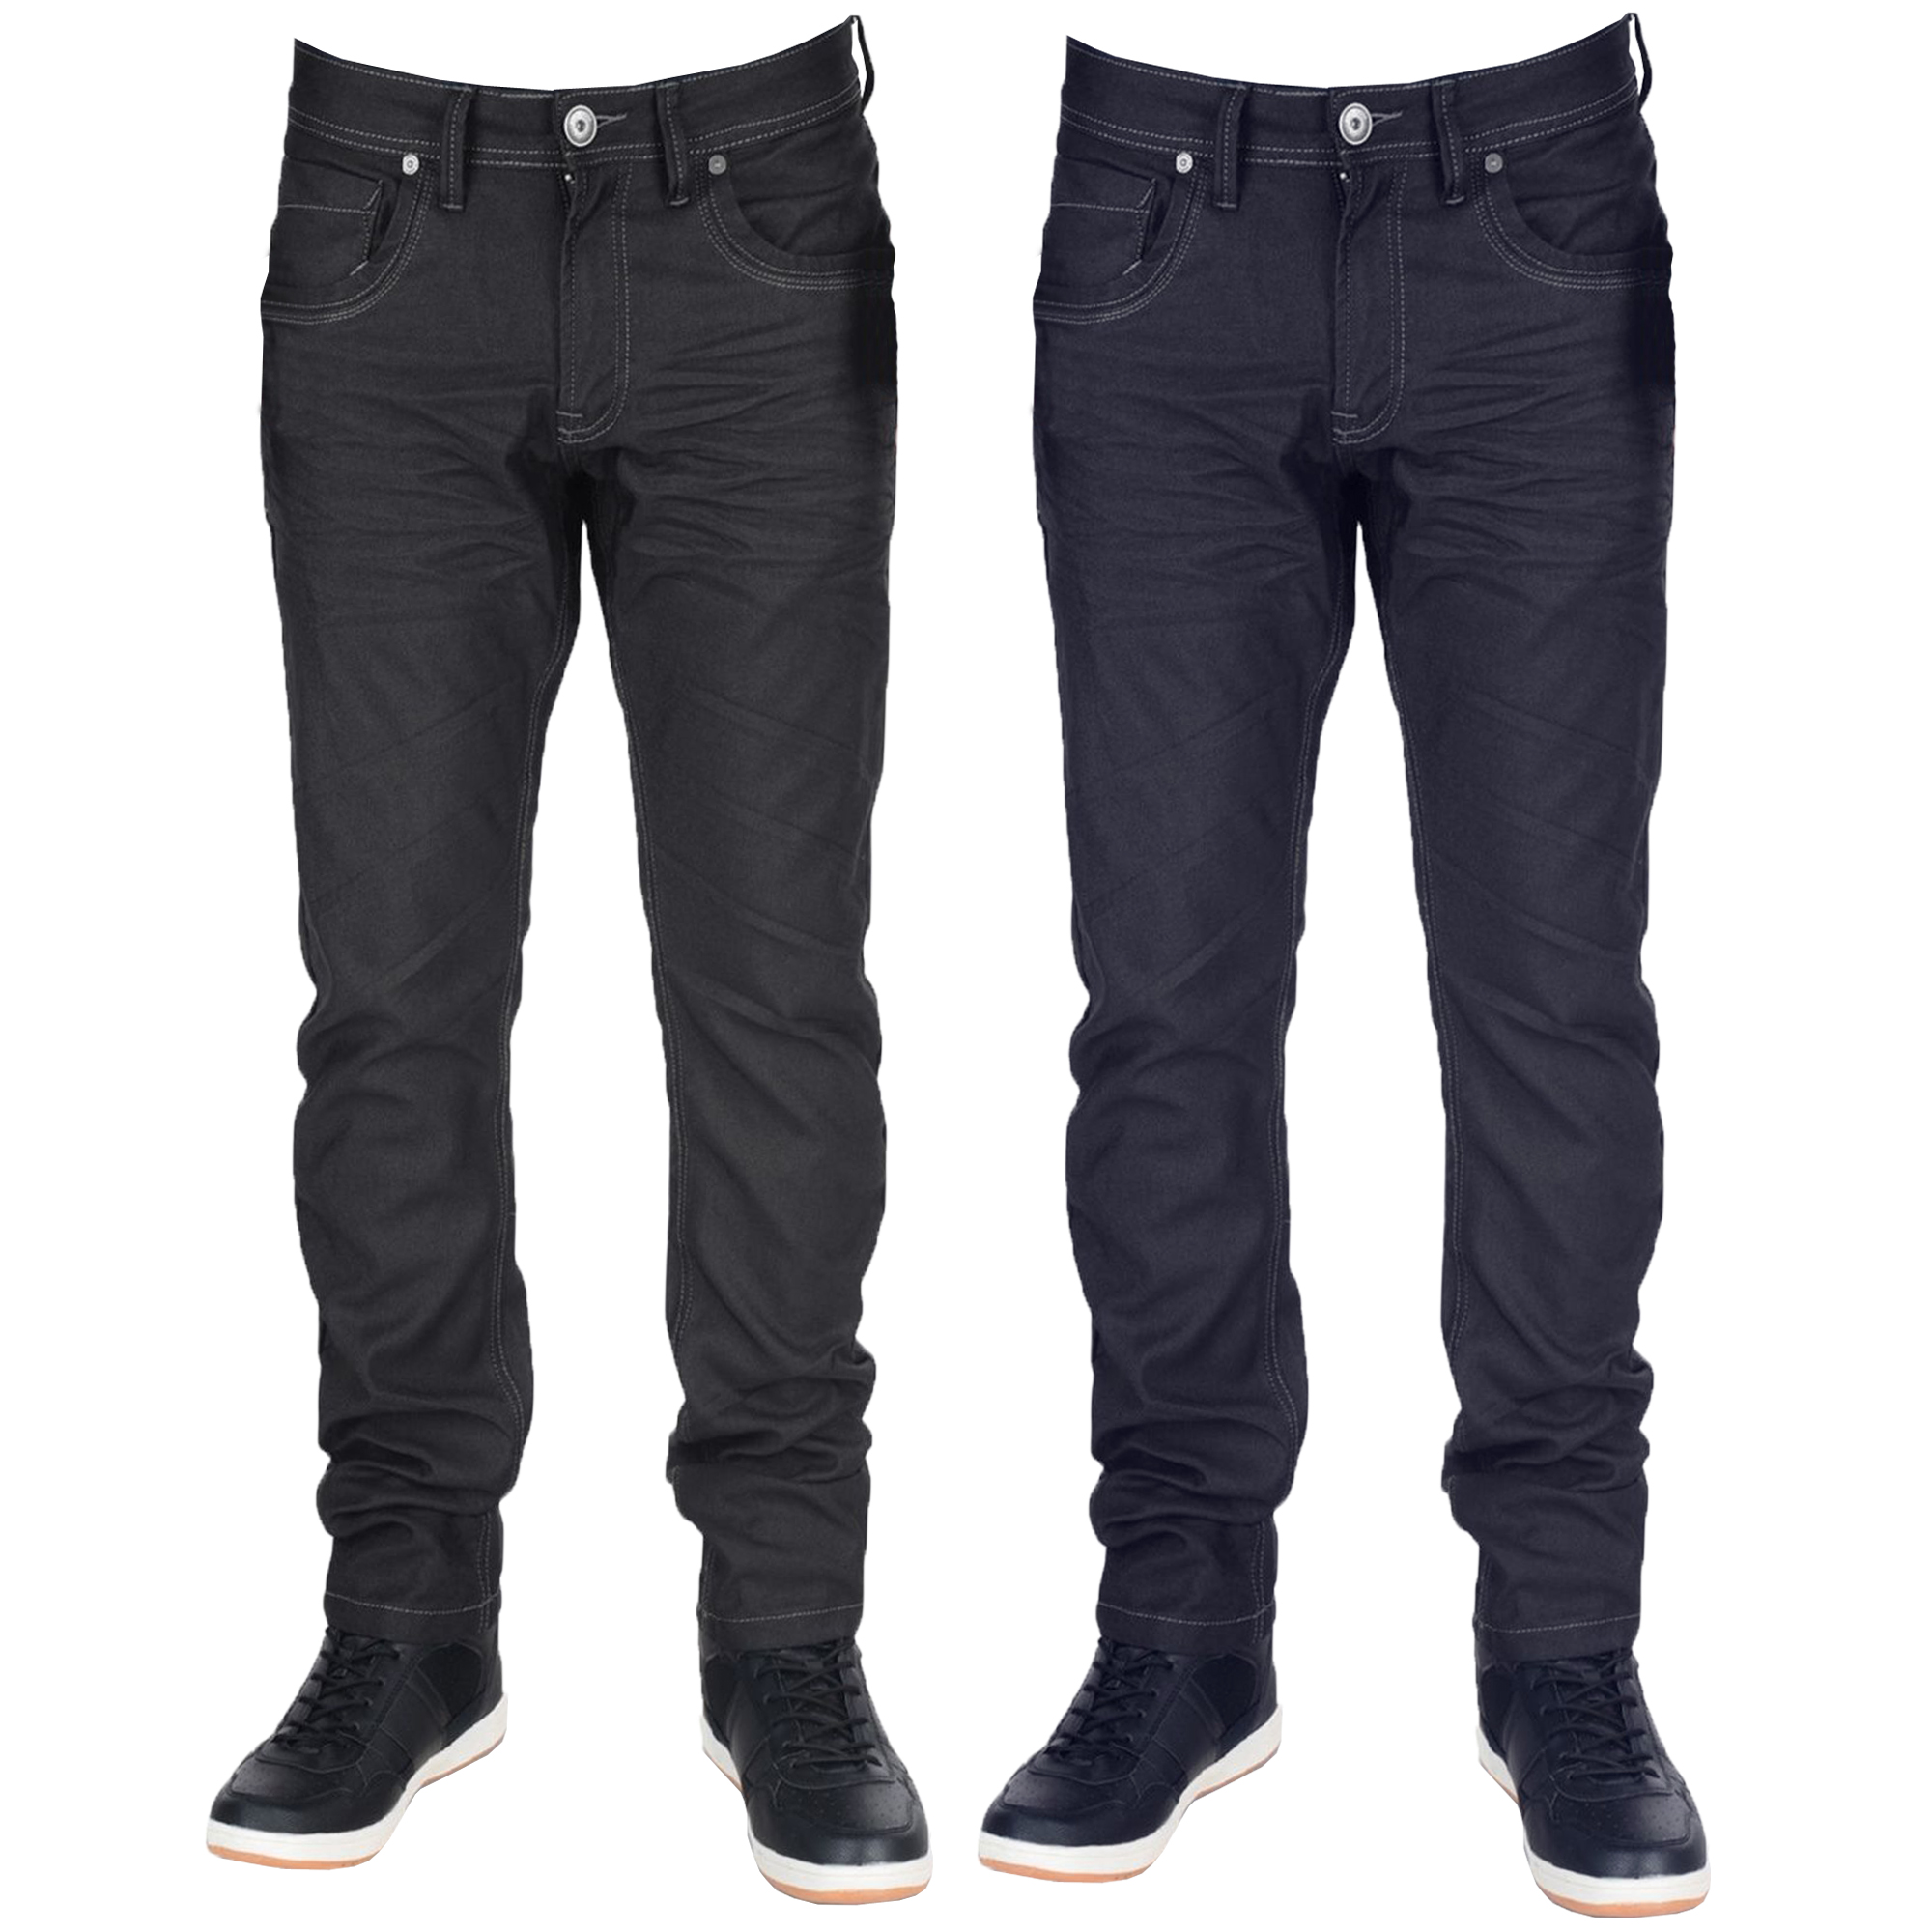 Mens-Crafted-Denim-Jeans-Crosshatch-Slim-Fit-Trousers-Menzo-Stretch-Pants-New thumbnail 4